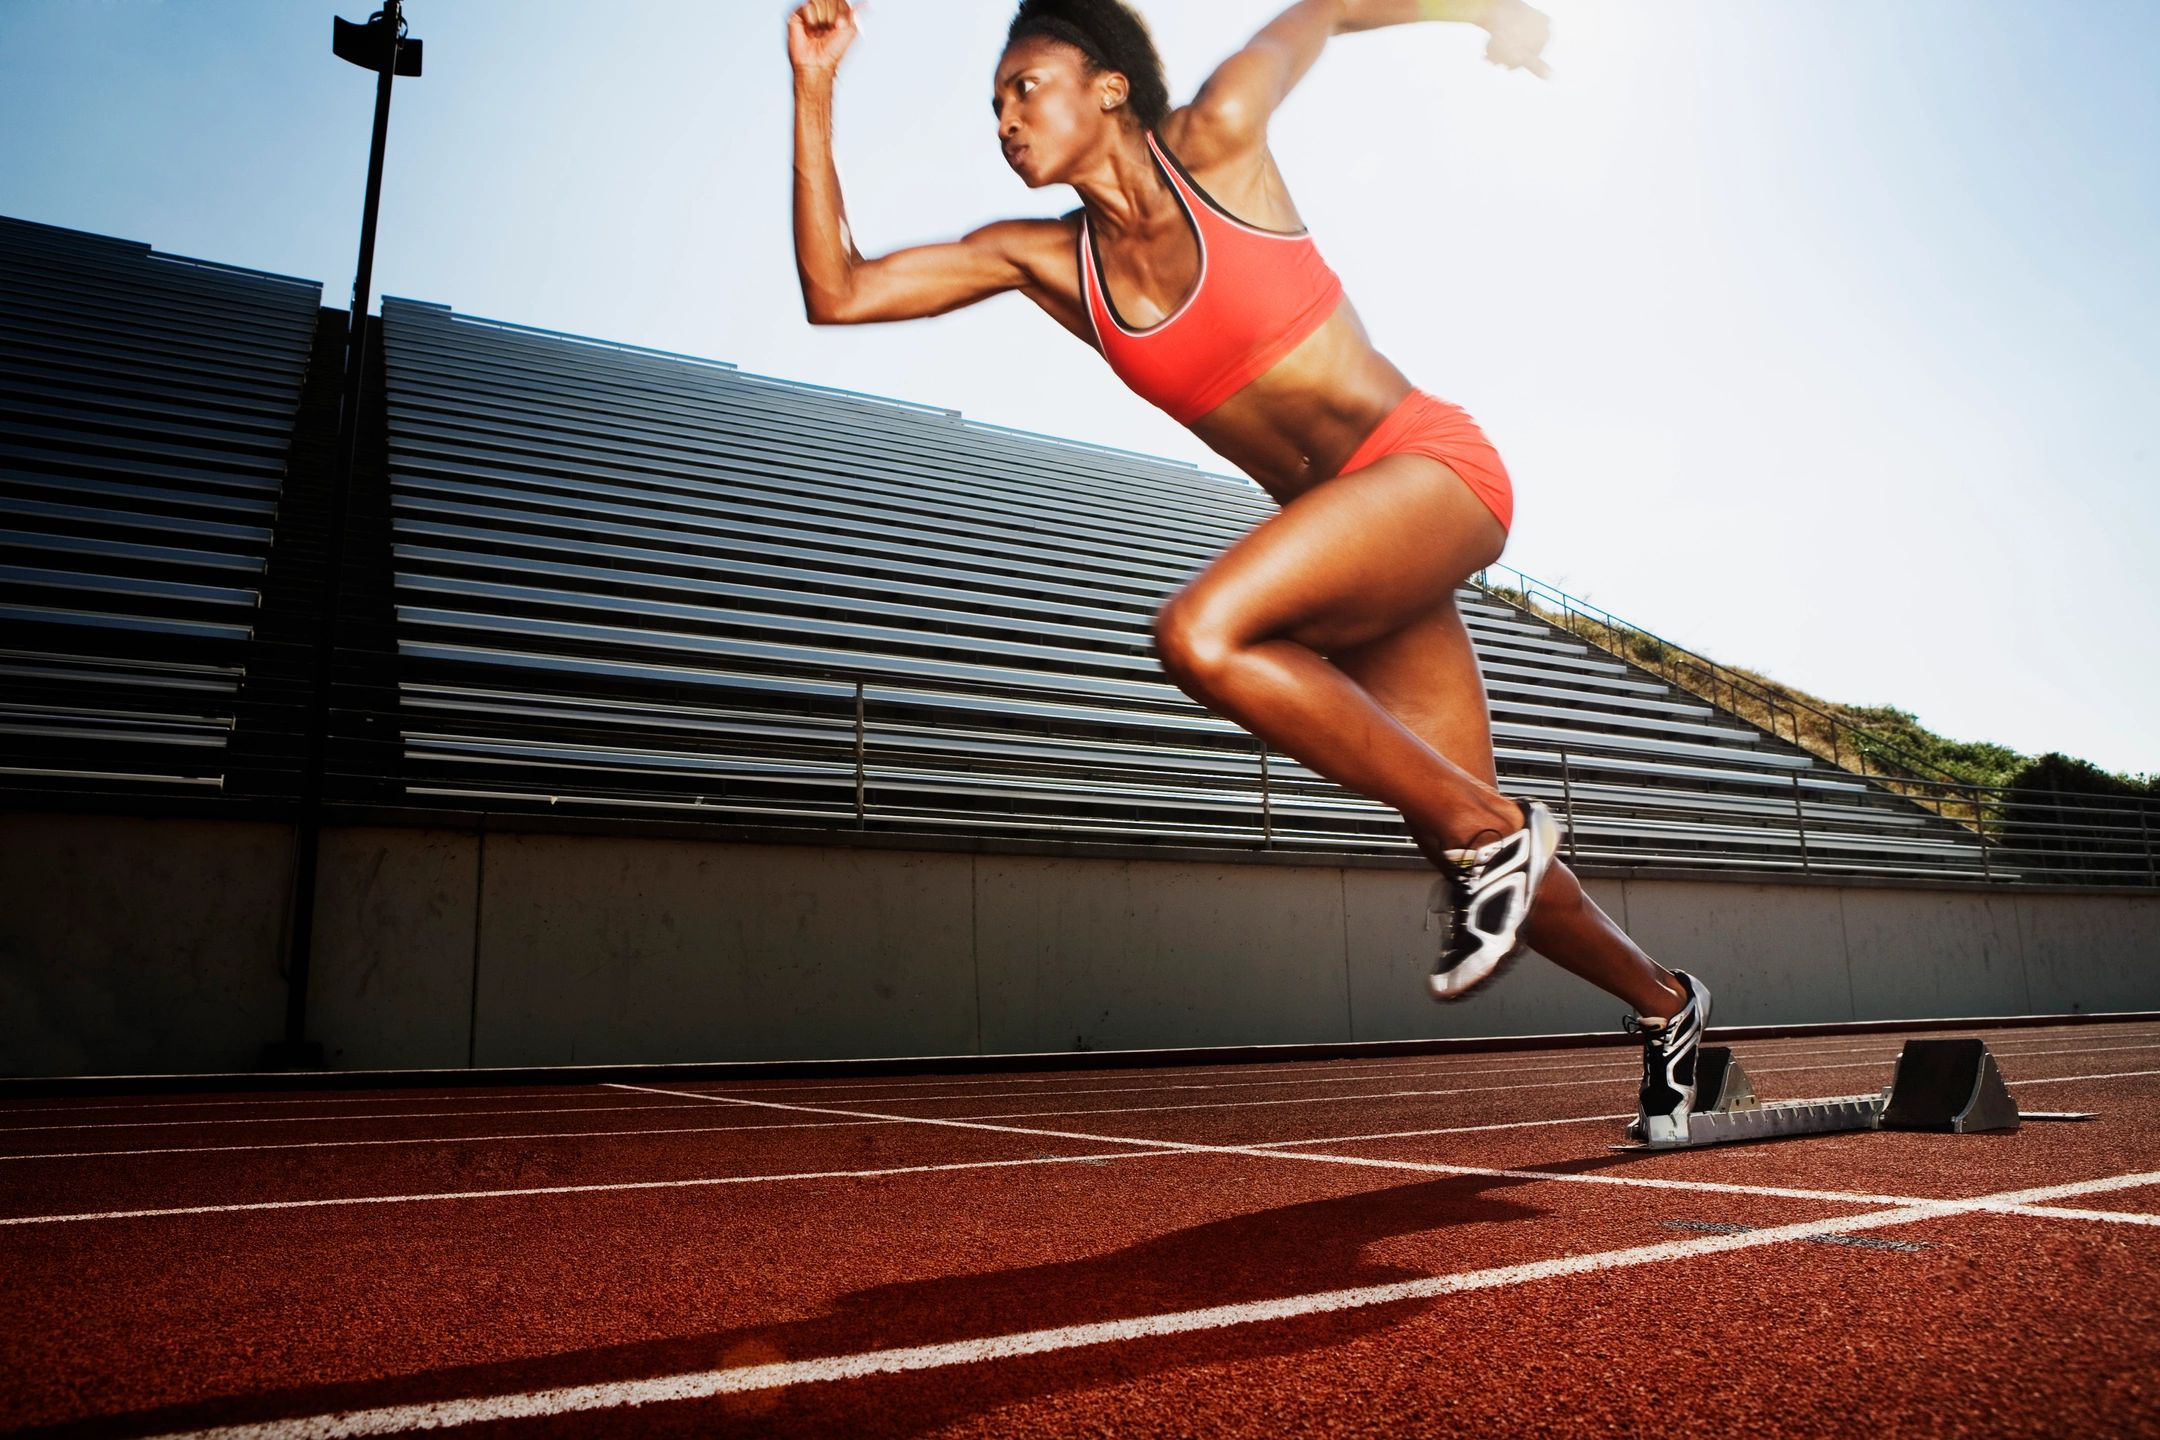 stock image of a professional athlete running on an olympic track